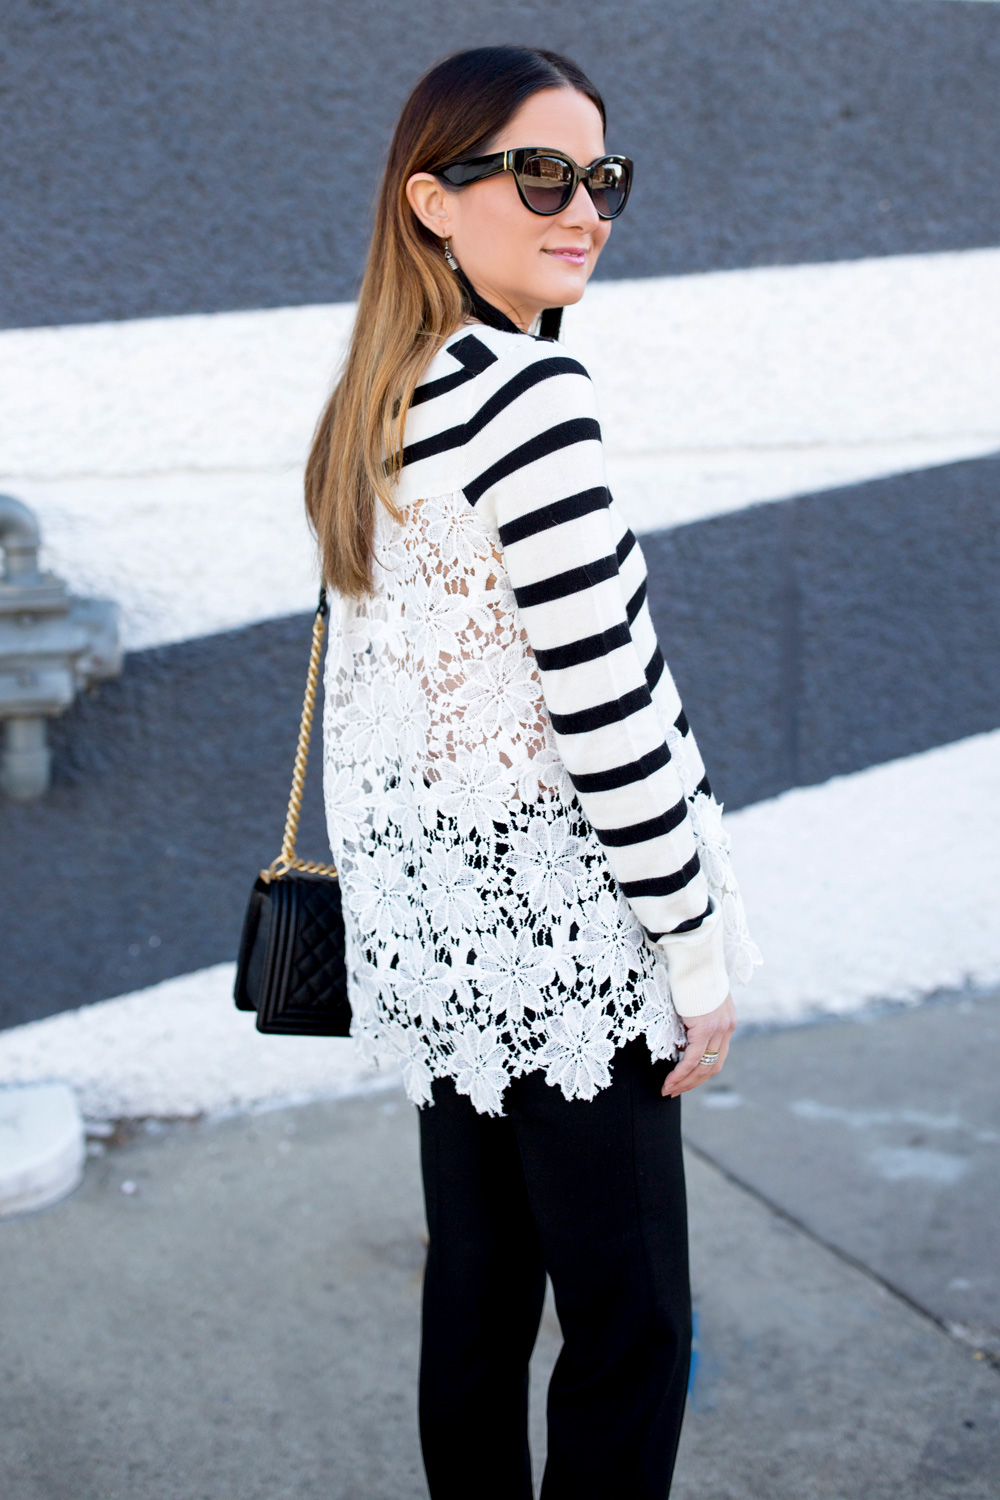 Jennifer Lake Style Charade in a black and white stripe sweater with lace detail, black tassel earrings, and oversized sunglasses in Chicago